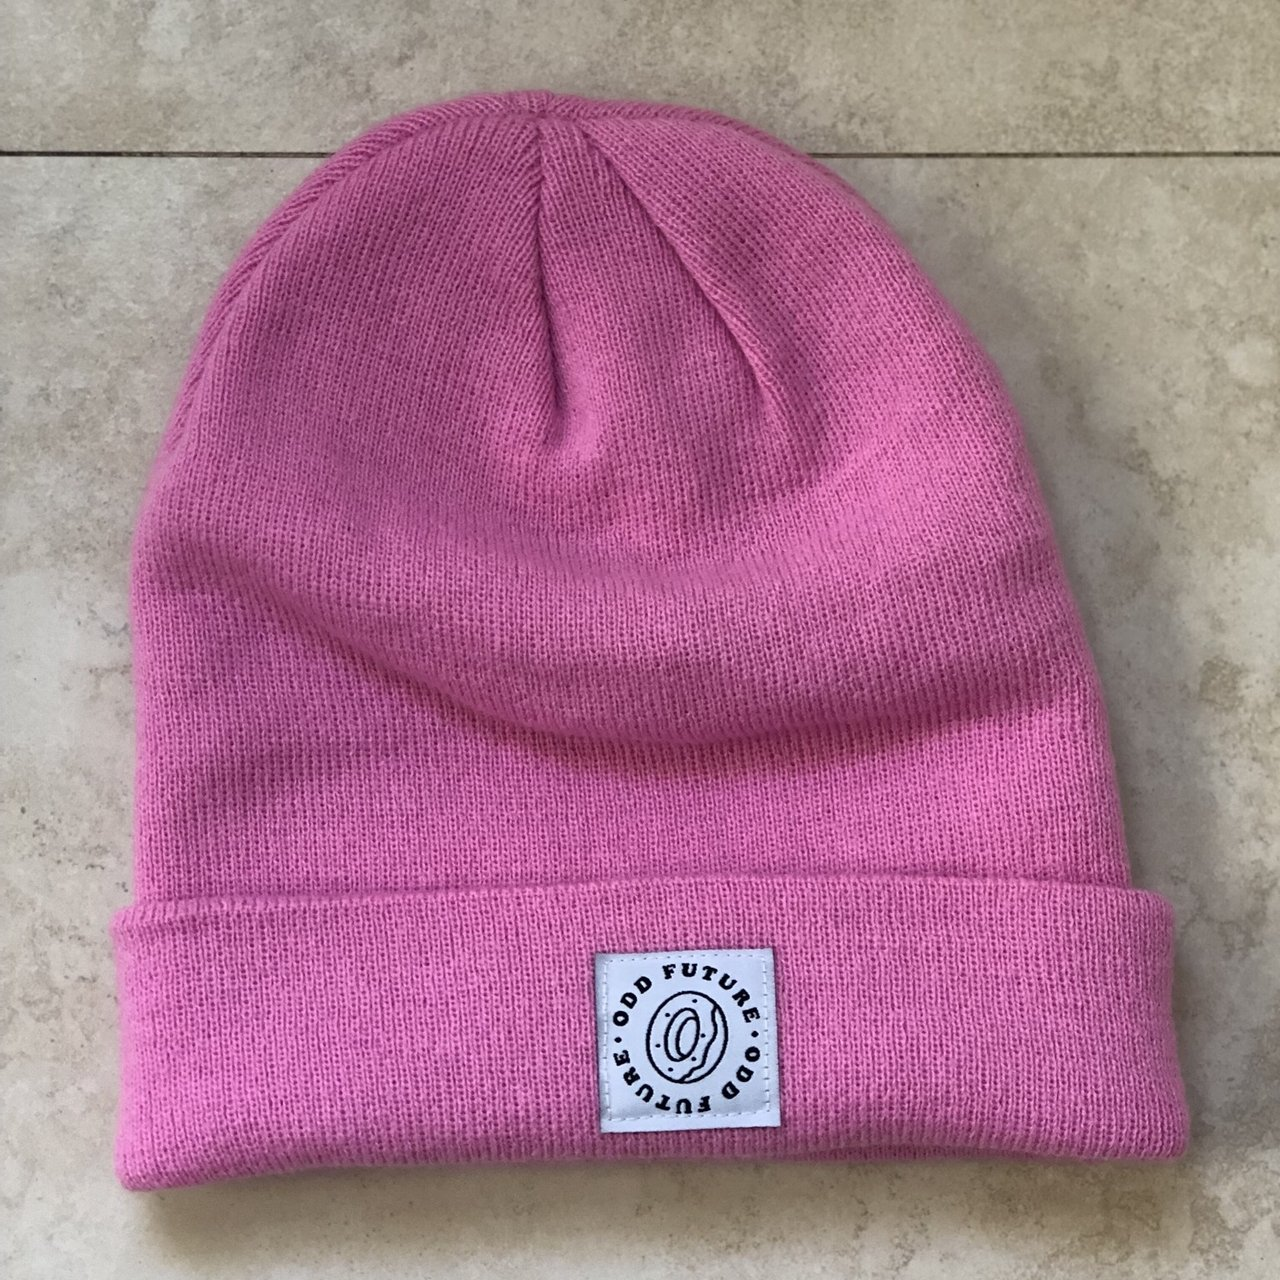 bbd09beeb5 Odd future beanie. Never worn before. In great condition. - Depop